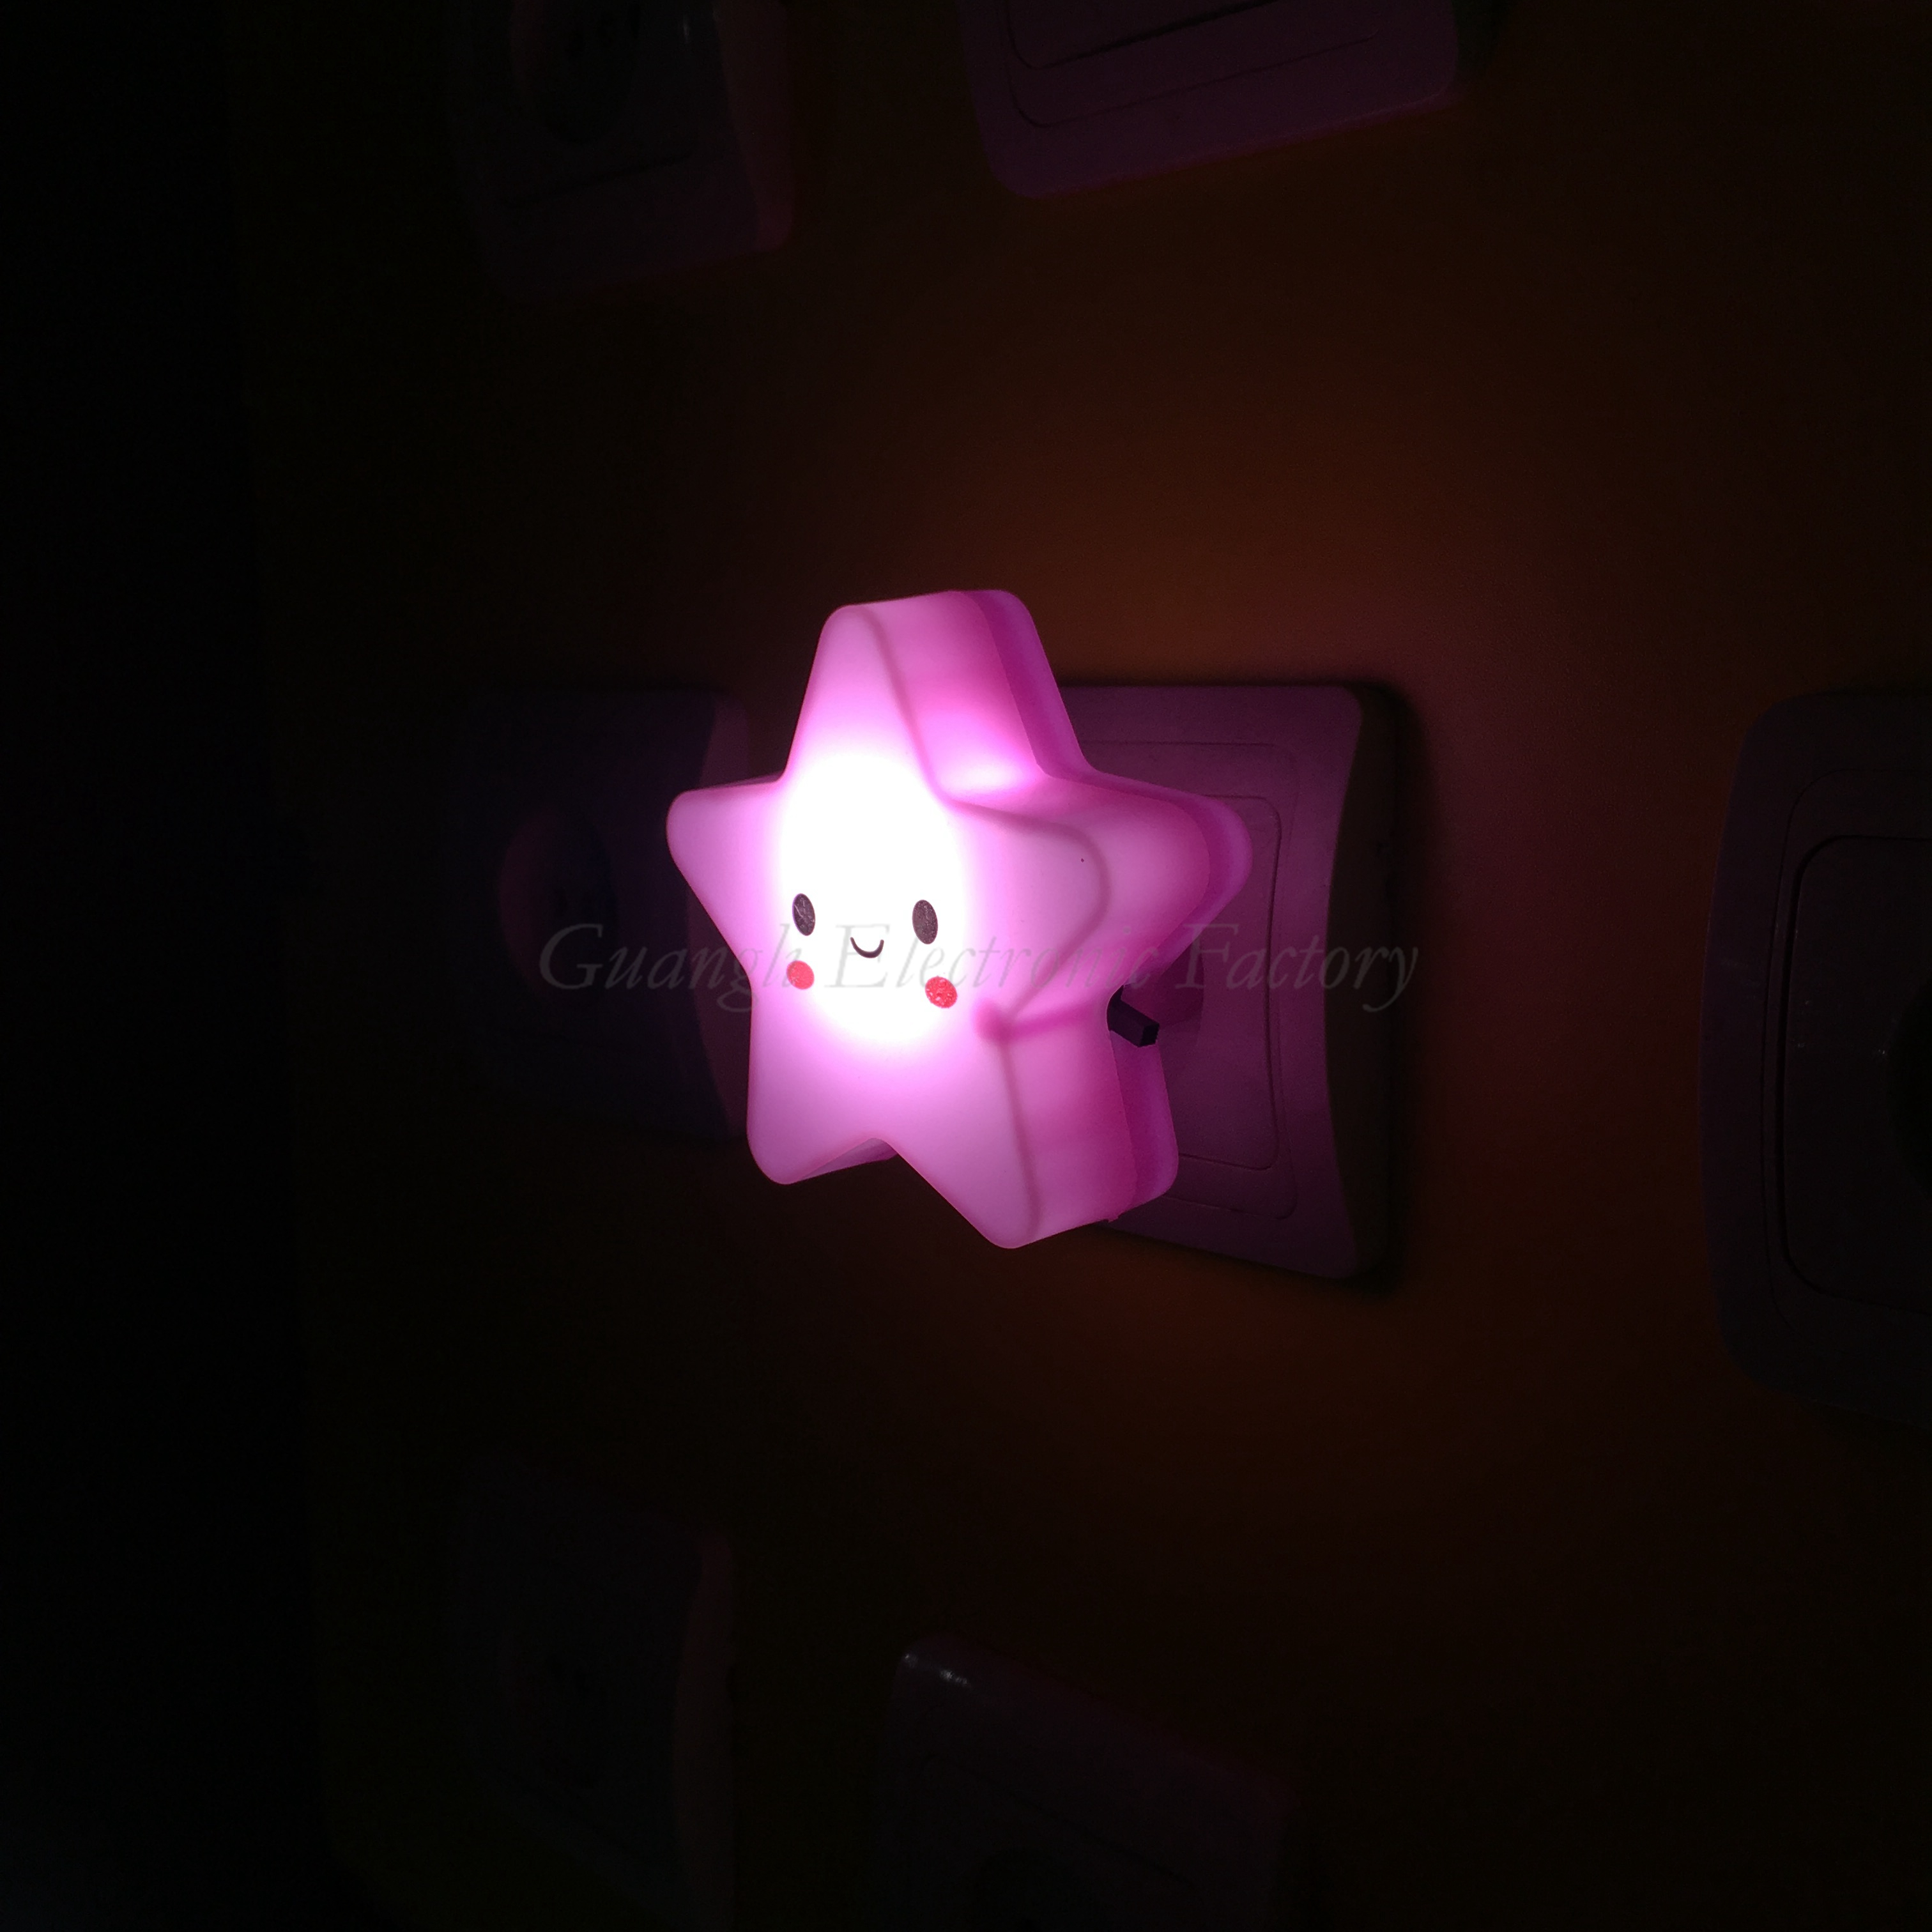 W096 4SMD mini switch plug in star with smile face room usage  For  night light  Baby Bedroom child cute gift